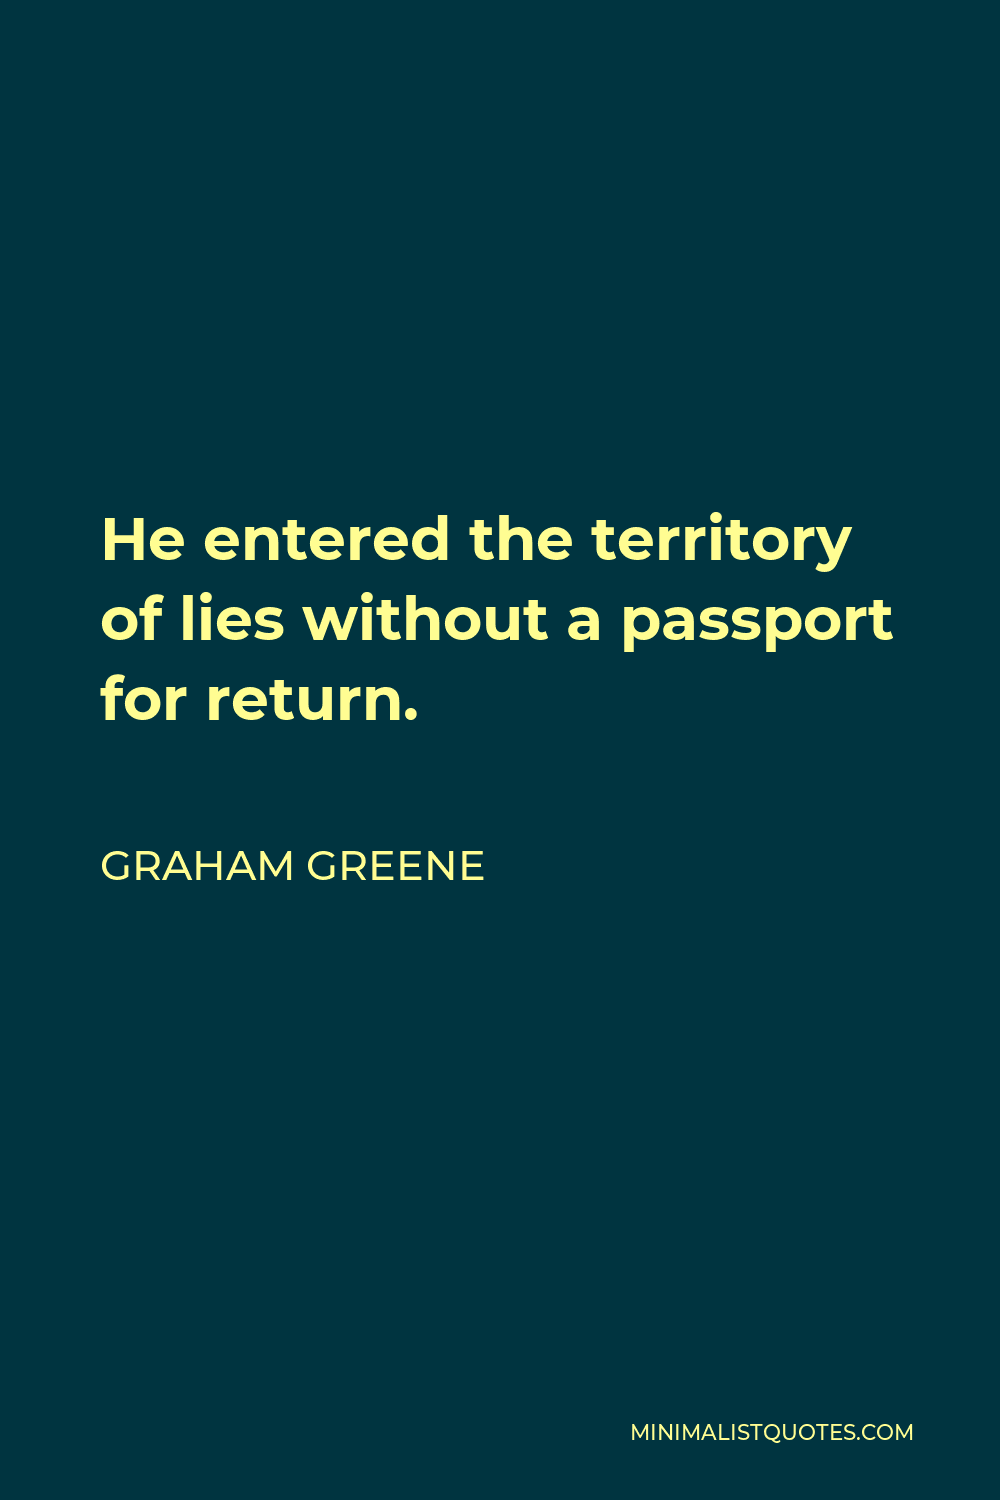 Graham Greene Quote - He entered the territory of lies without a passport for return.